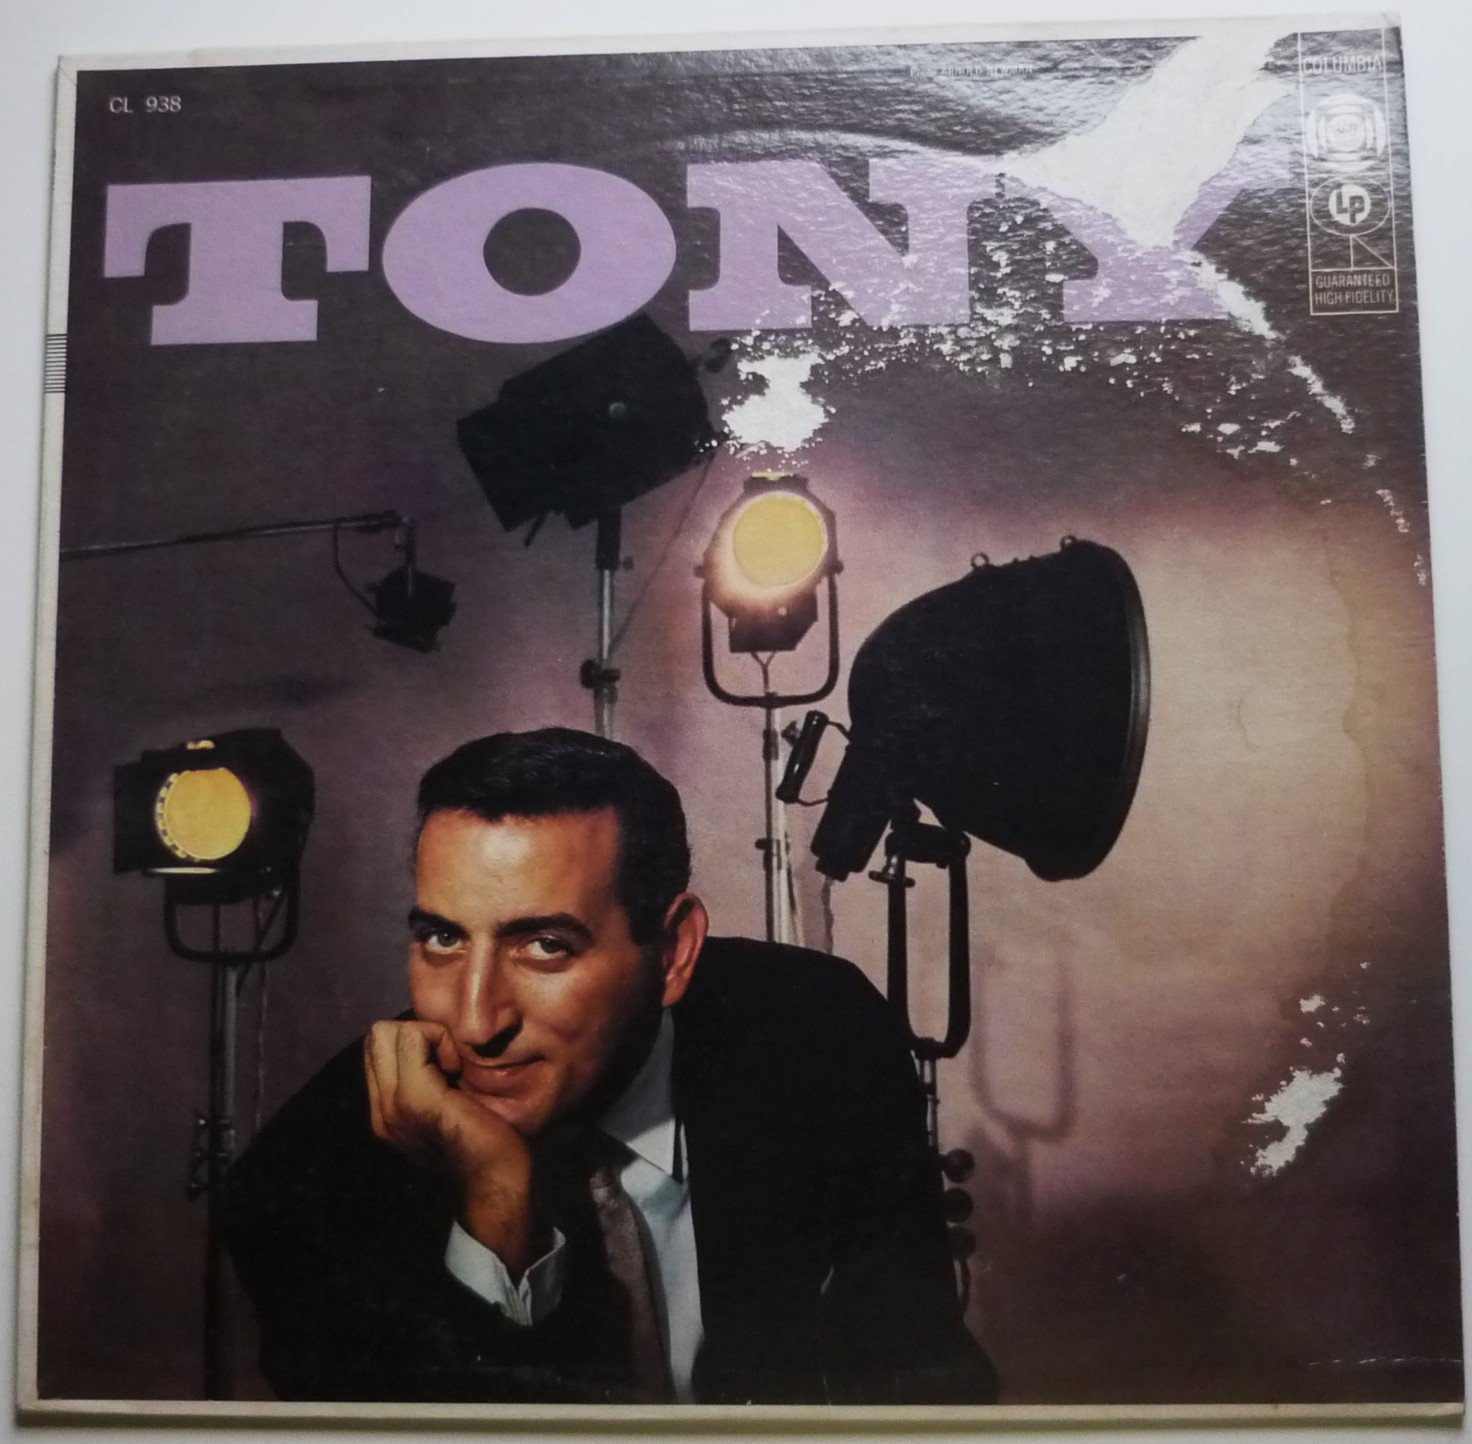 Tony lp by Tony Bennett cl938